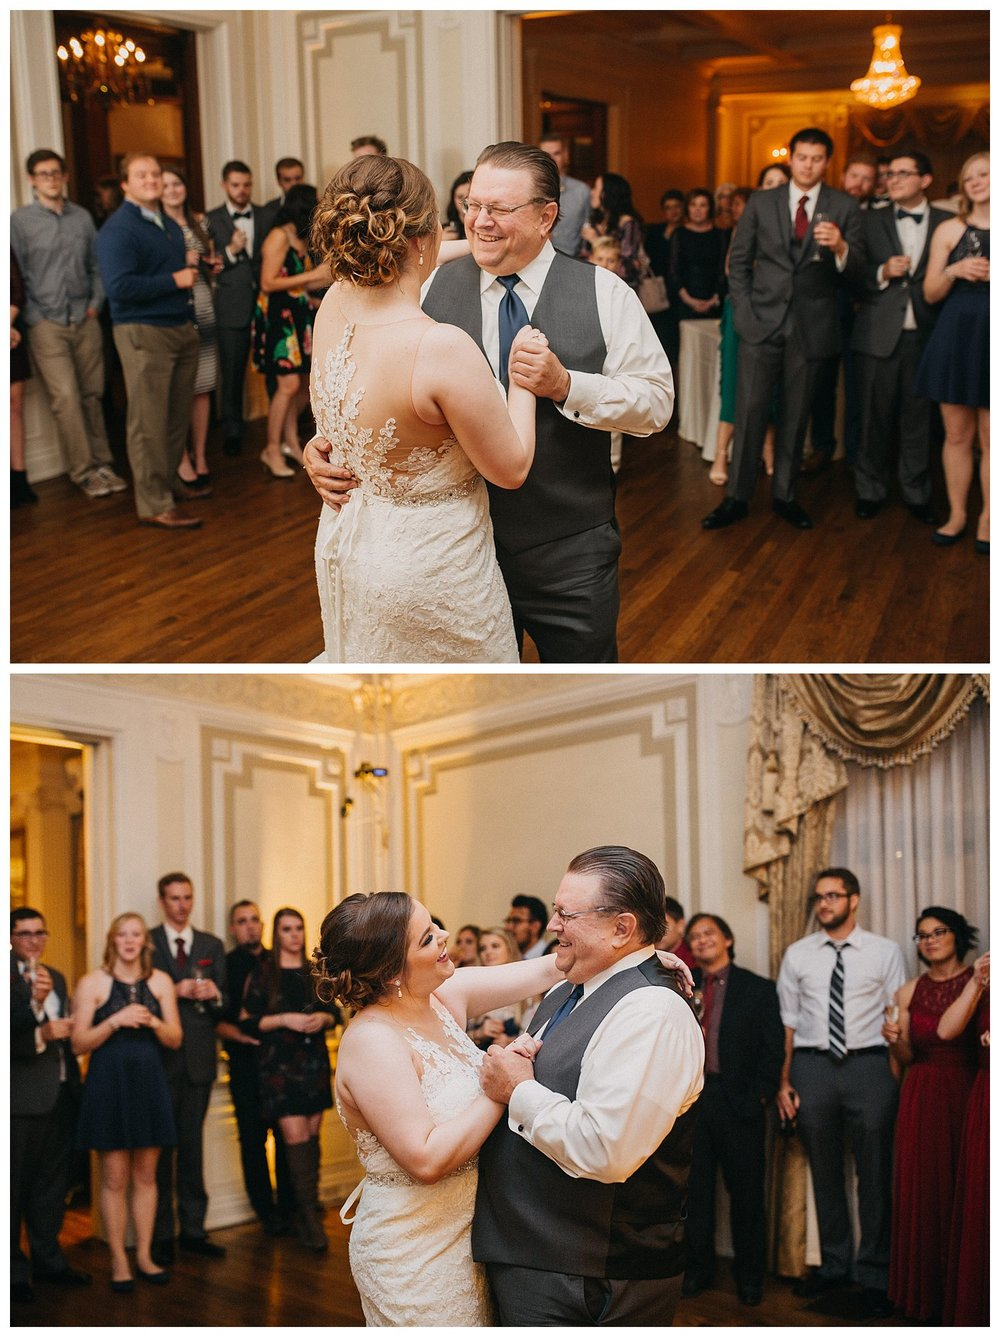 Kelsey_Diane_Photography_Loose_Mansion_Wedding_Photography_Kansas_City_Victor_Lyndsay_0167.jpg